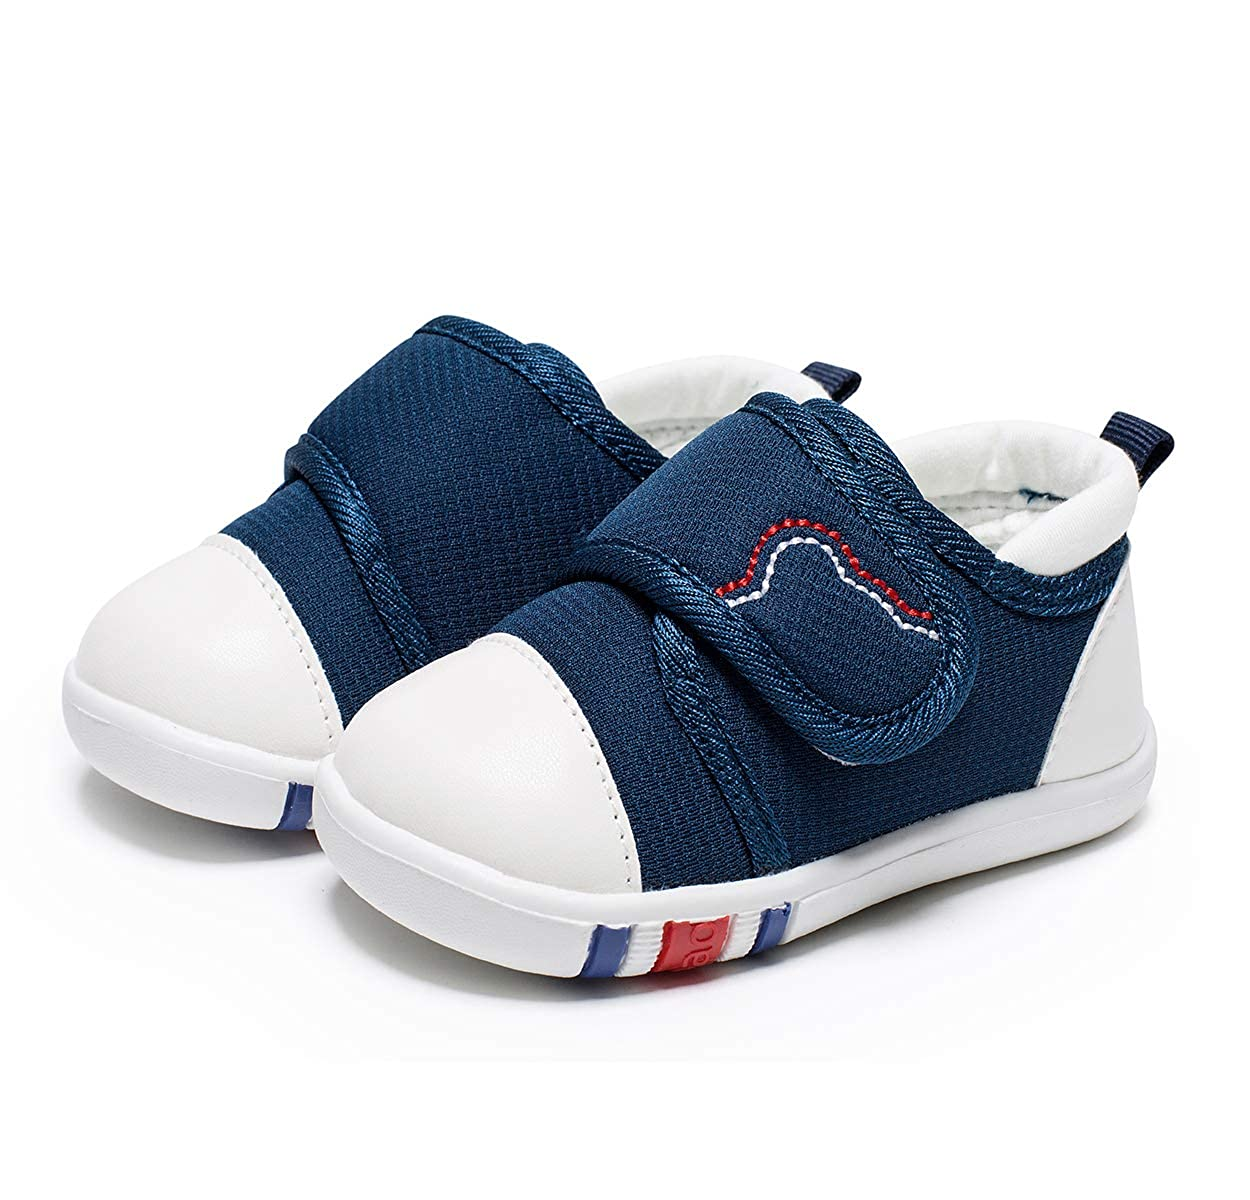 HLMBB Baby Shoes Sneakers for Infant Toddler Girls Boys Kids Babies 6 9 12 18 Months Pre Walker Black